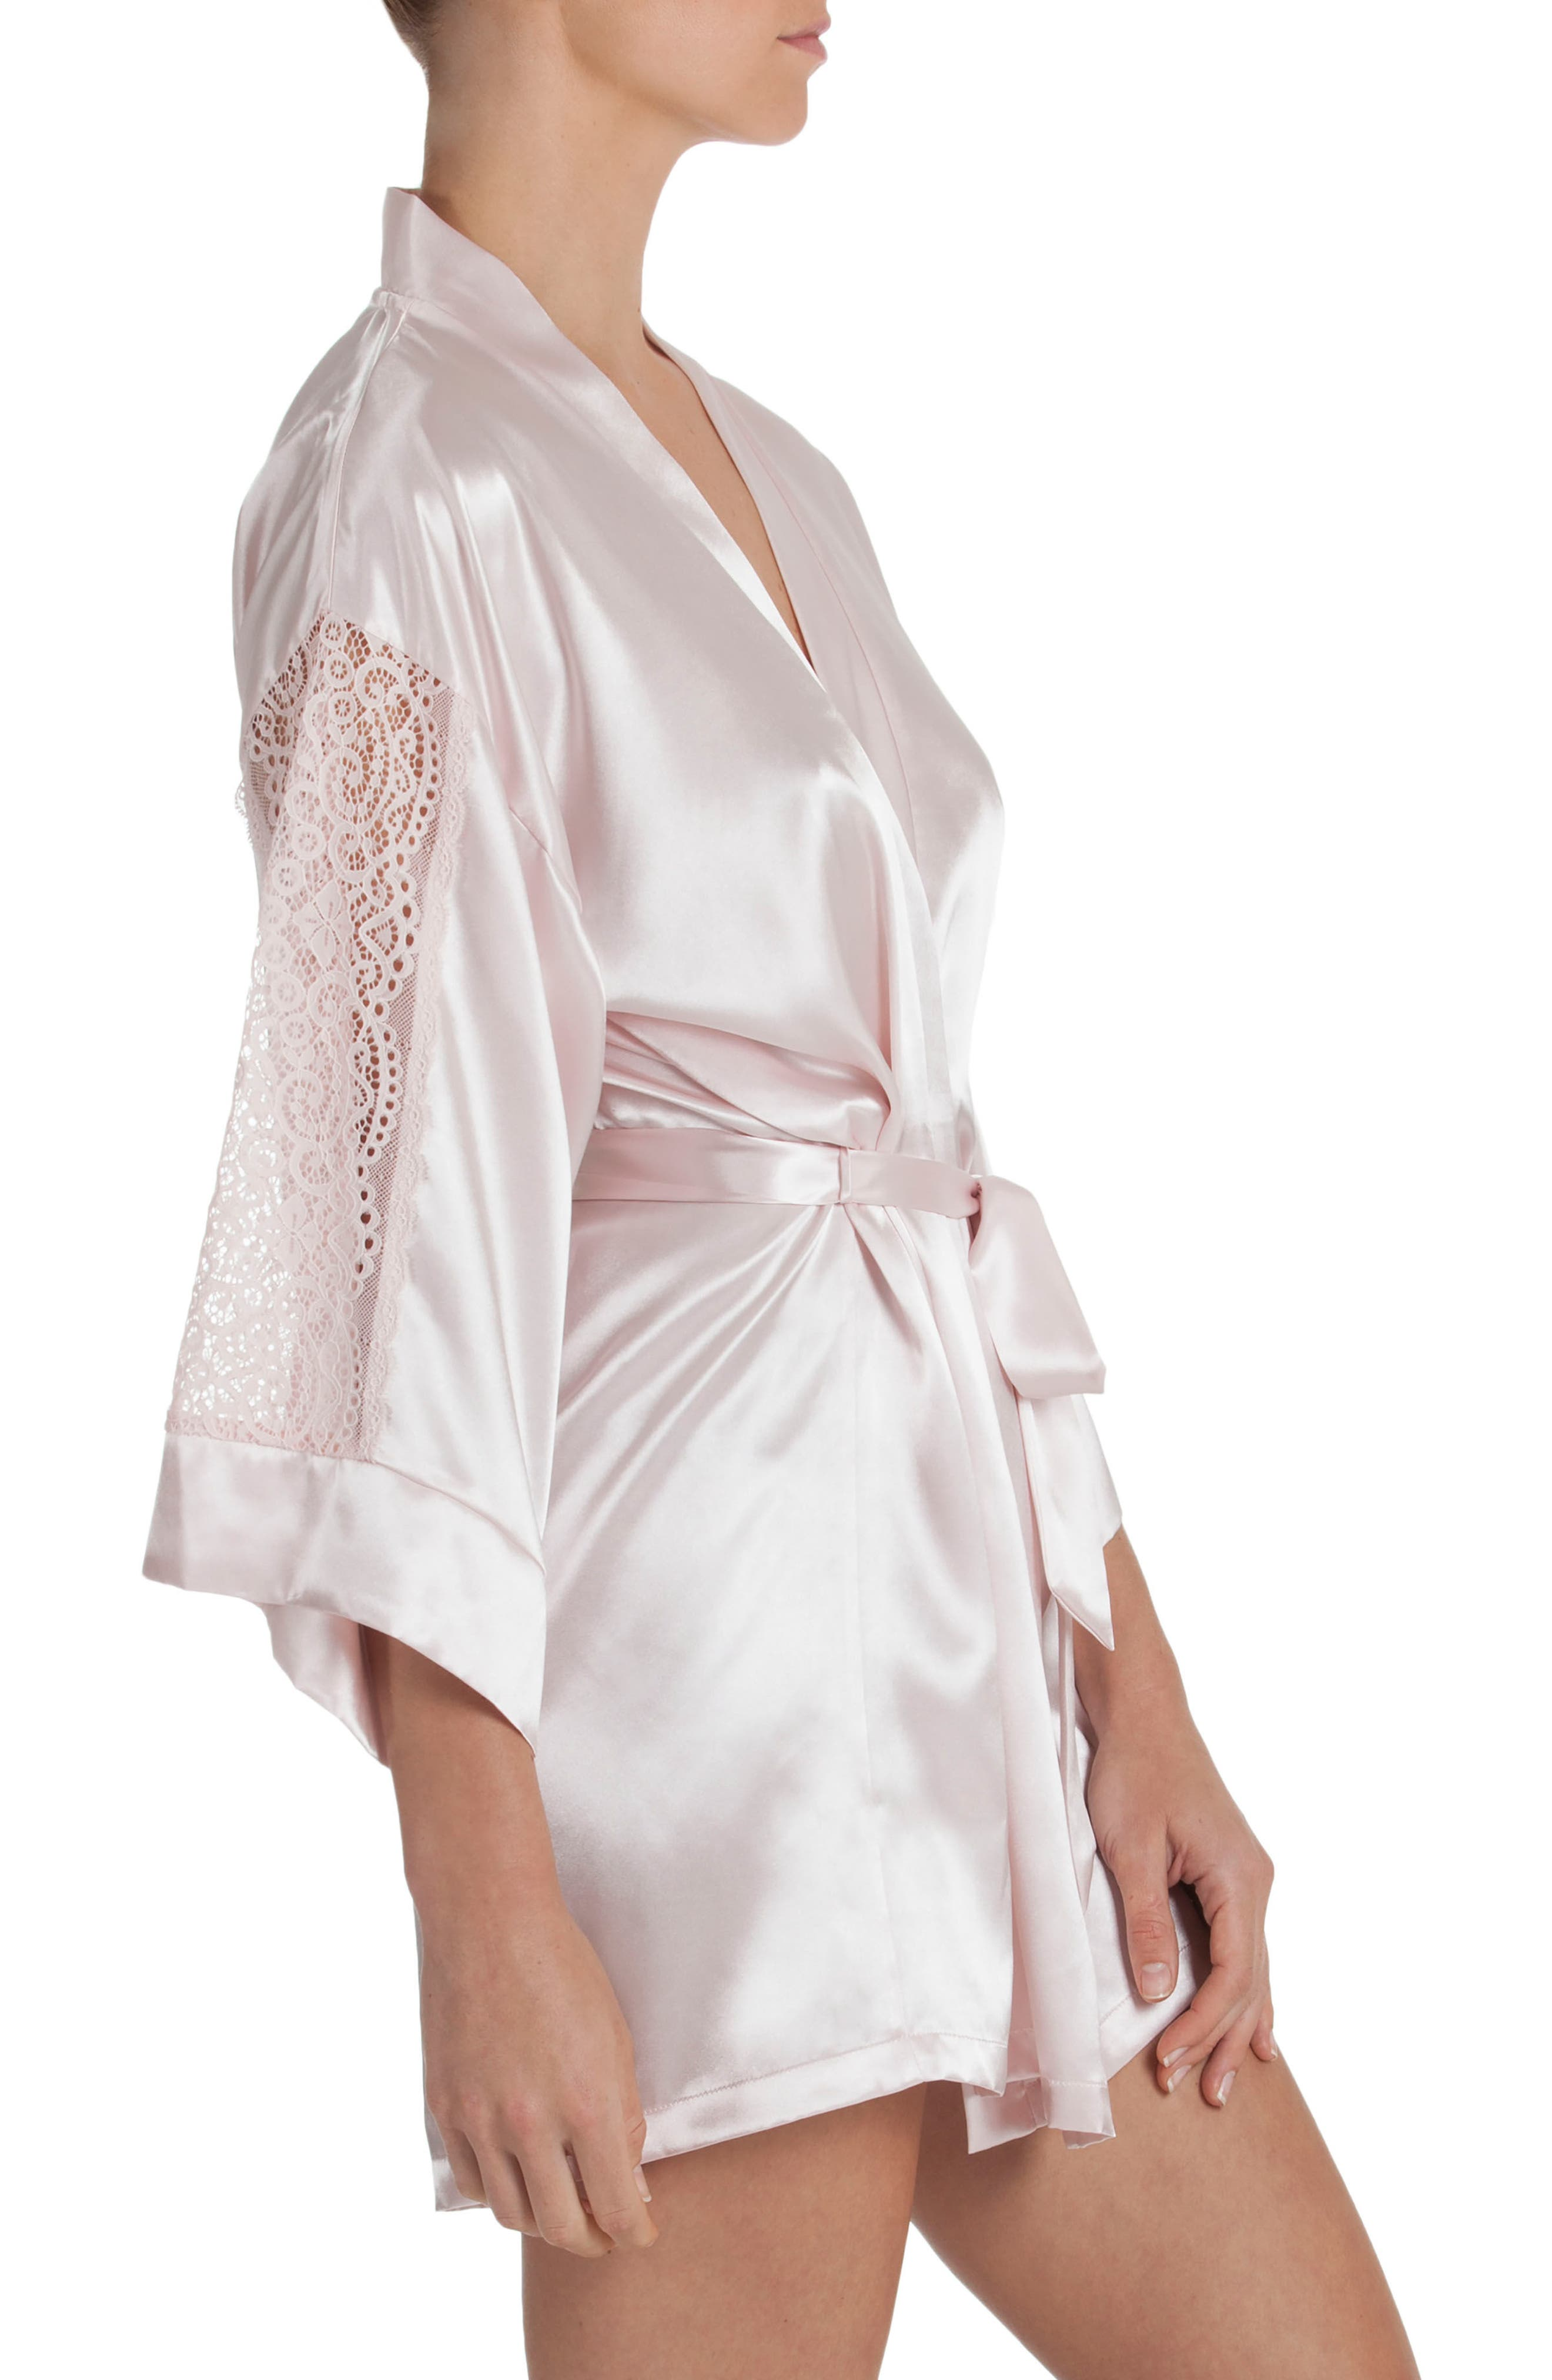 IN BLOOM BY JONQUIL,                             Satin Robe,                             Alternate thumbnail 3, color,                             950